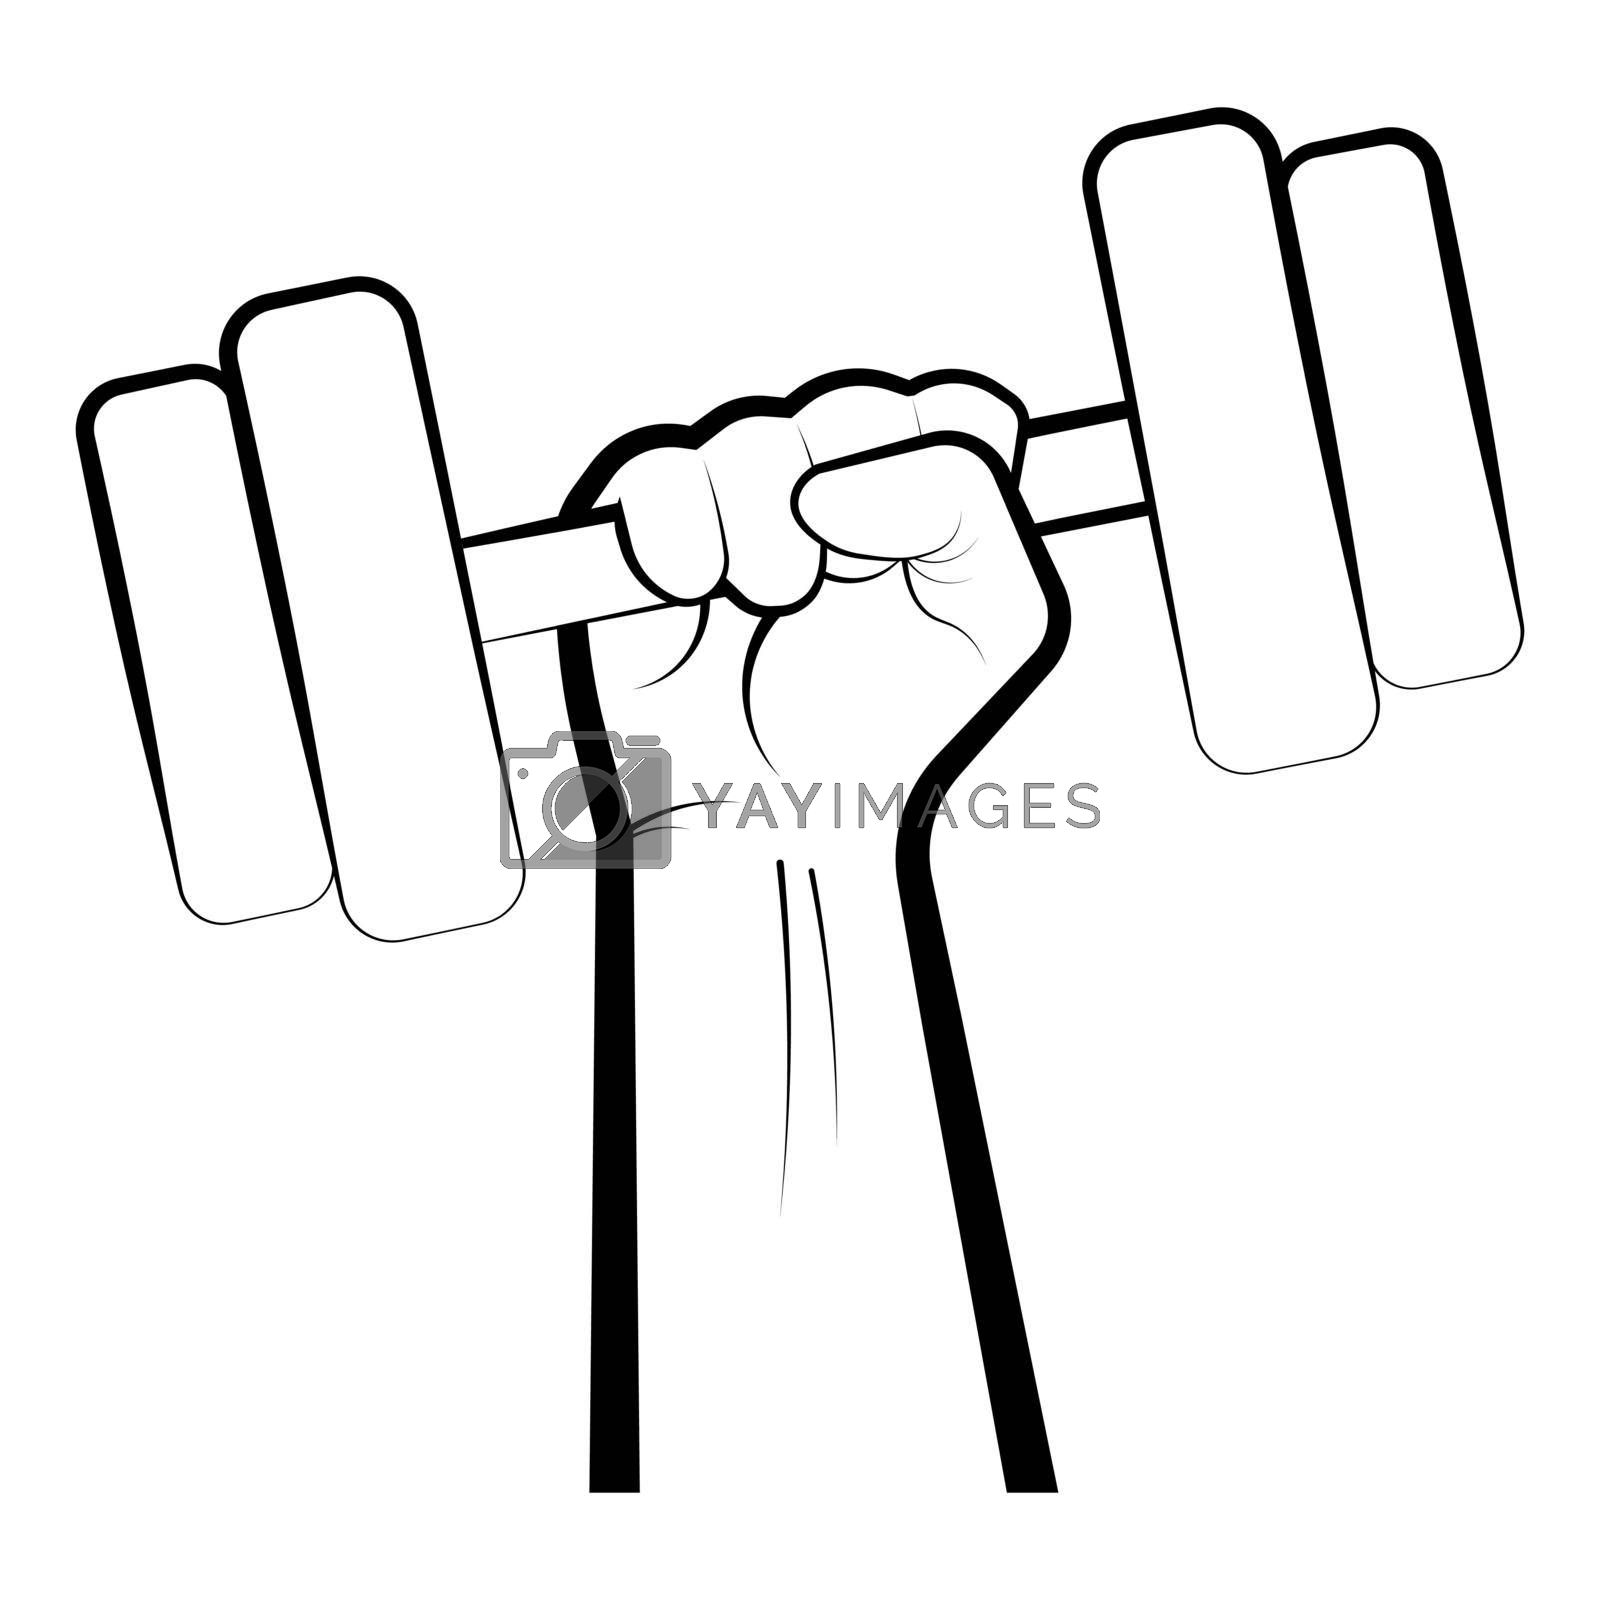 strong hand of an athlete holds a dumbbell. Print for printing on posters and clothes. Logo for the gym. Black-white vector on blank background